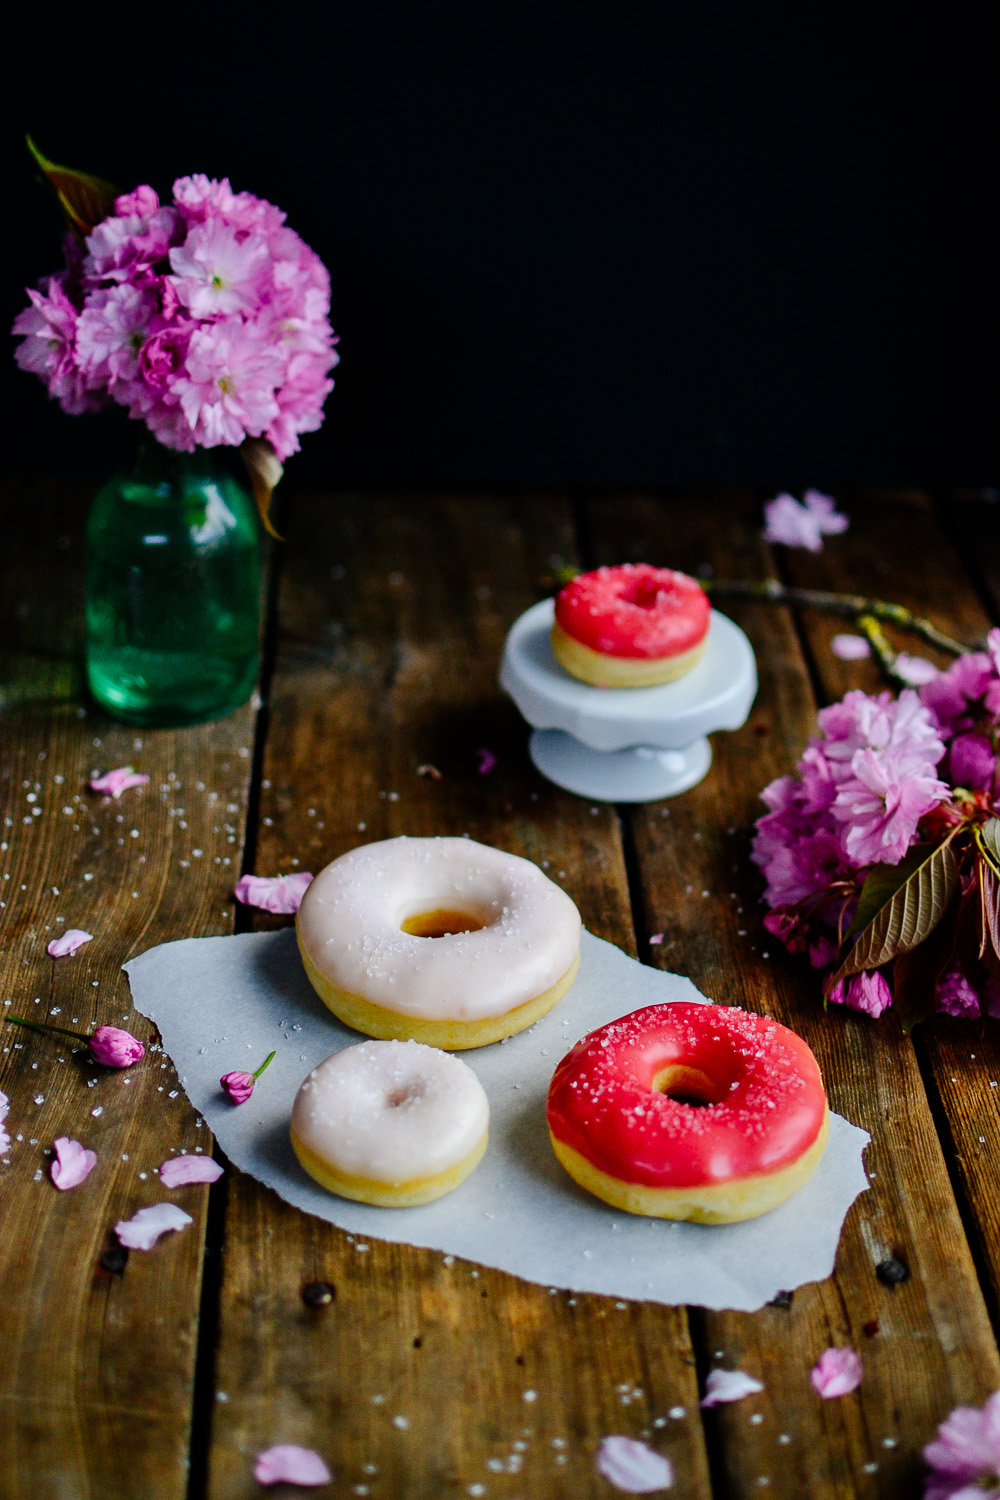 Lemon Doughnuts with Raspberry Glaze